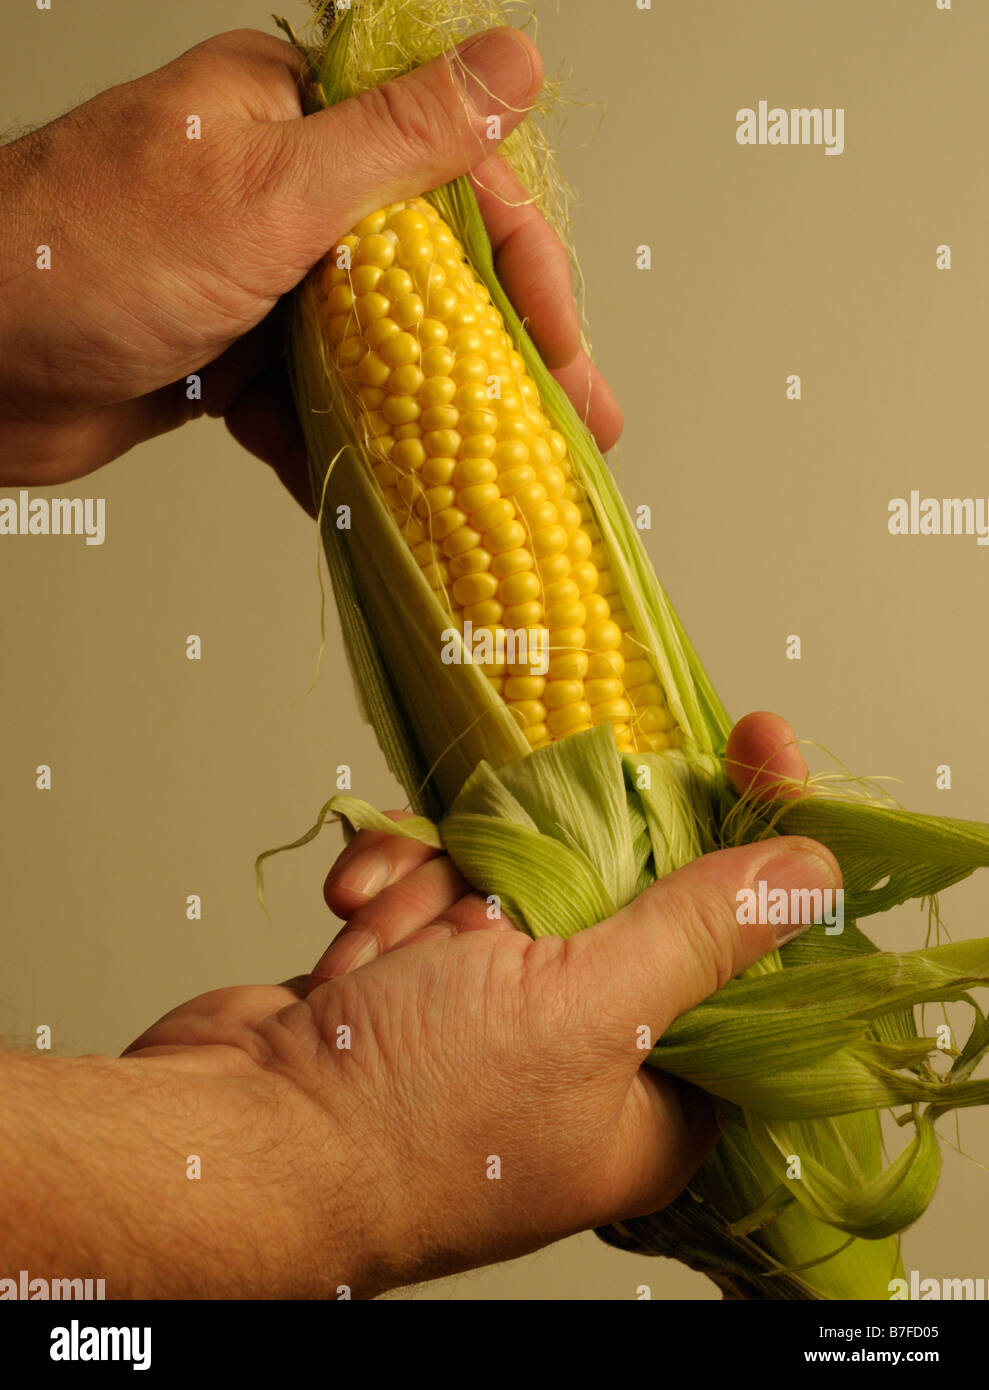 Stripping the outer leaves from a corn cob. - Stock Image